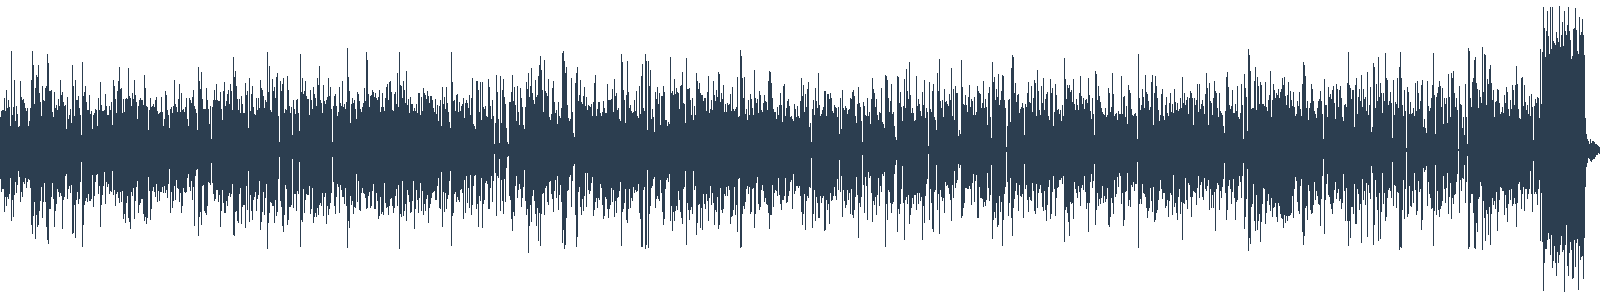 SuperŽENY waveform